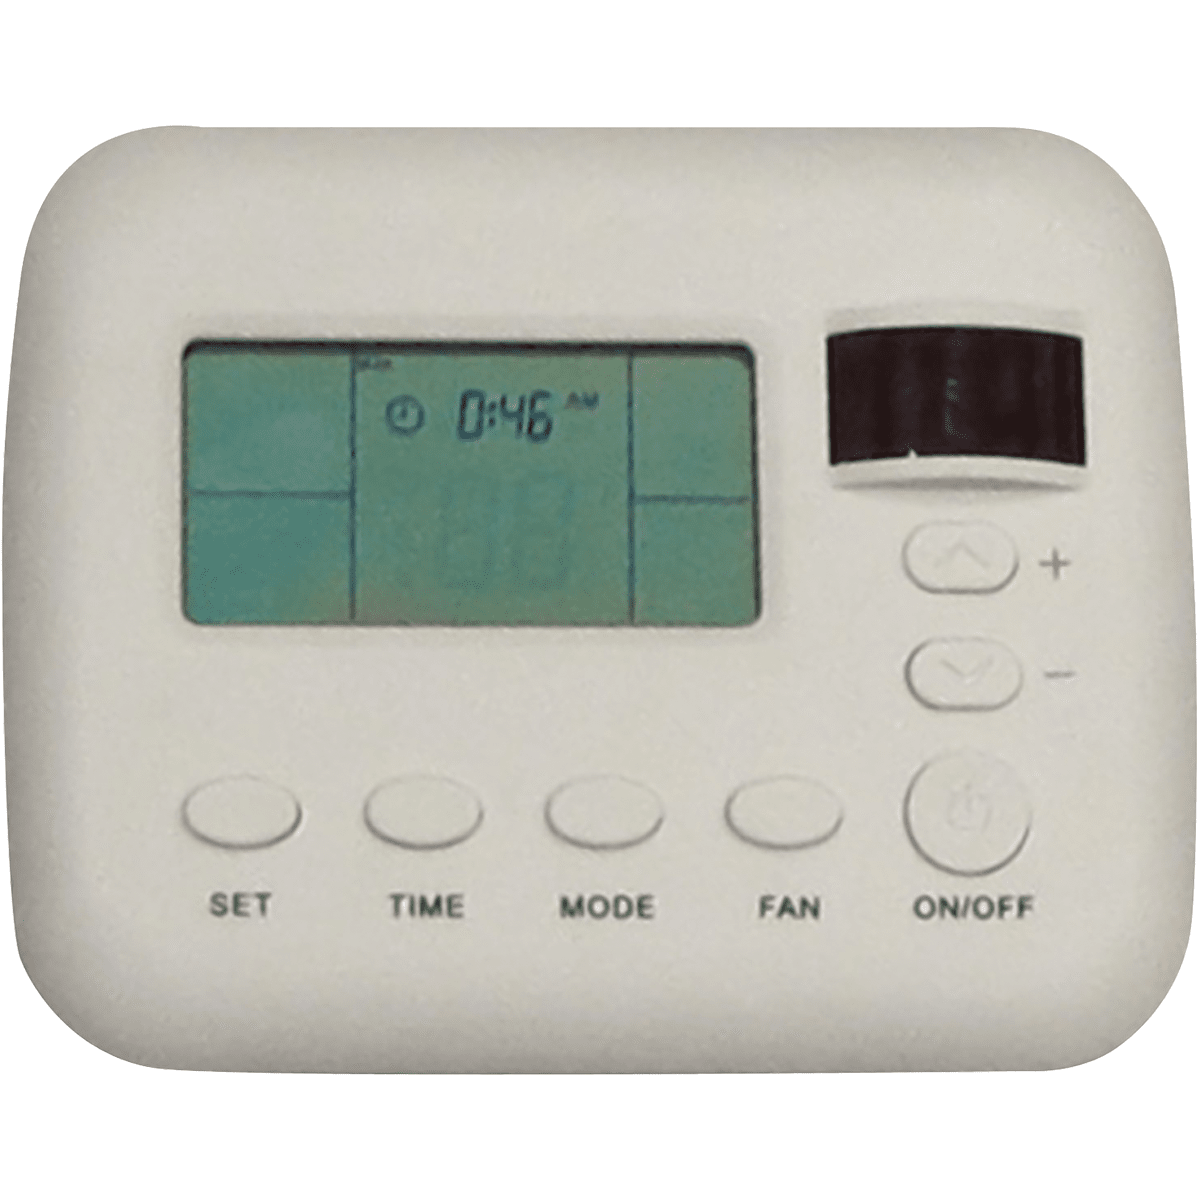 Comfort-aire Ptac Wireless Thermostat 7602-536